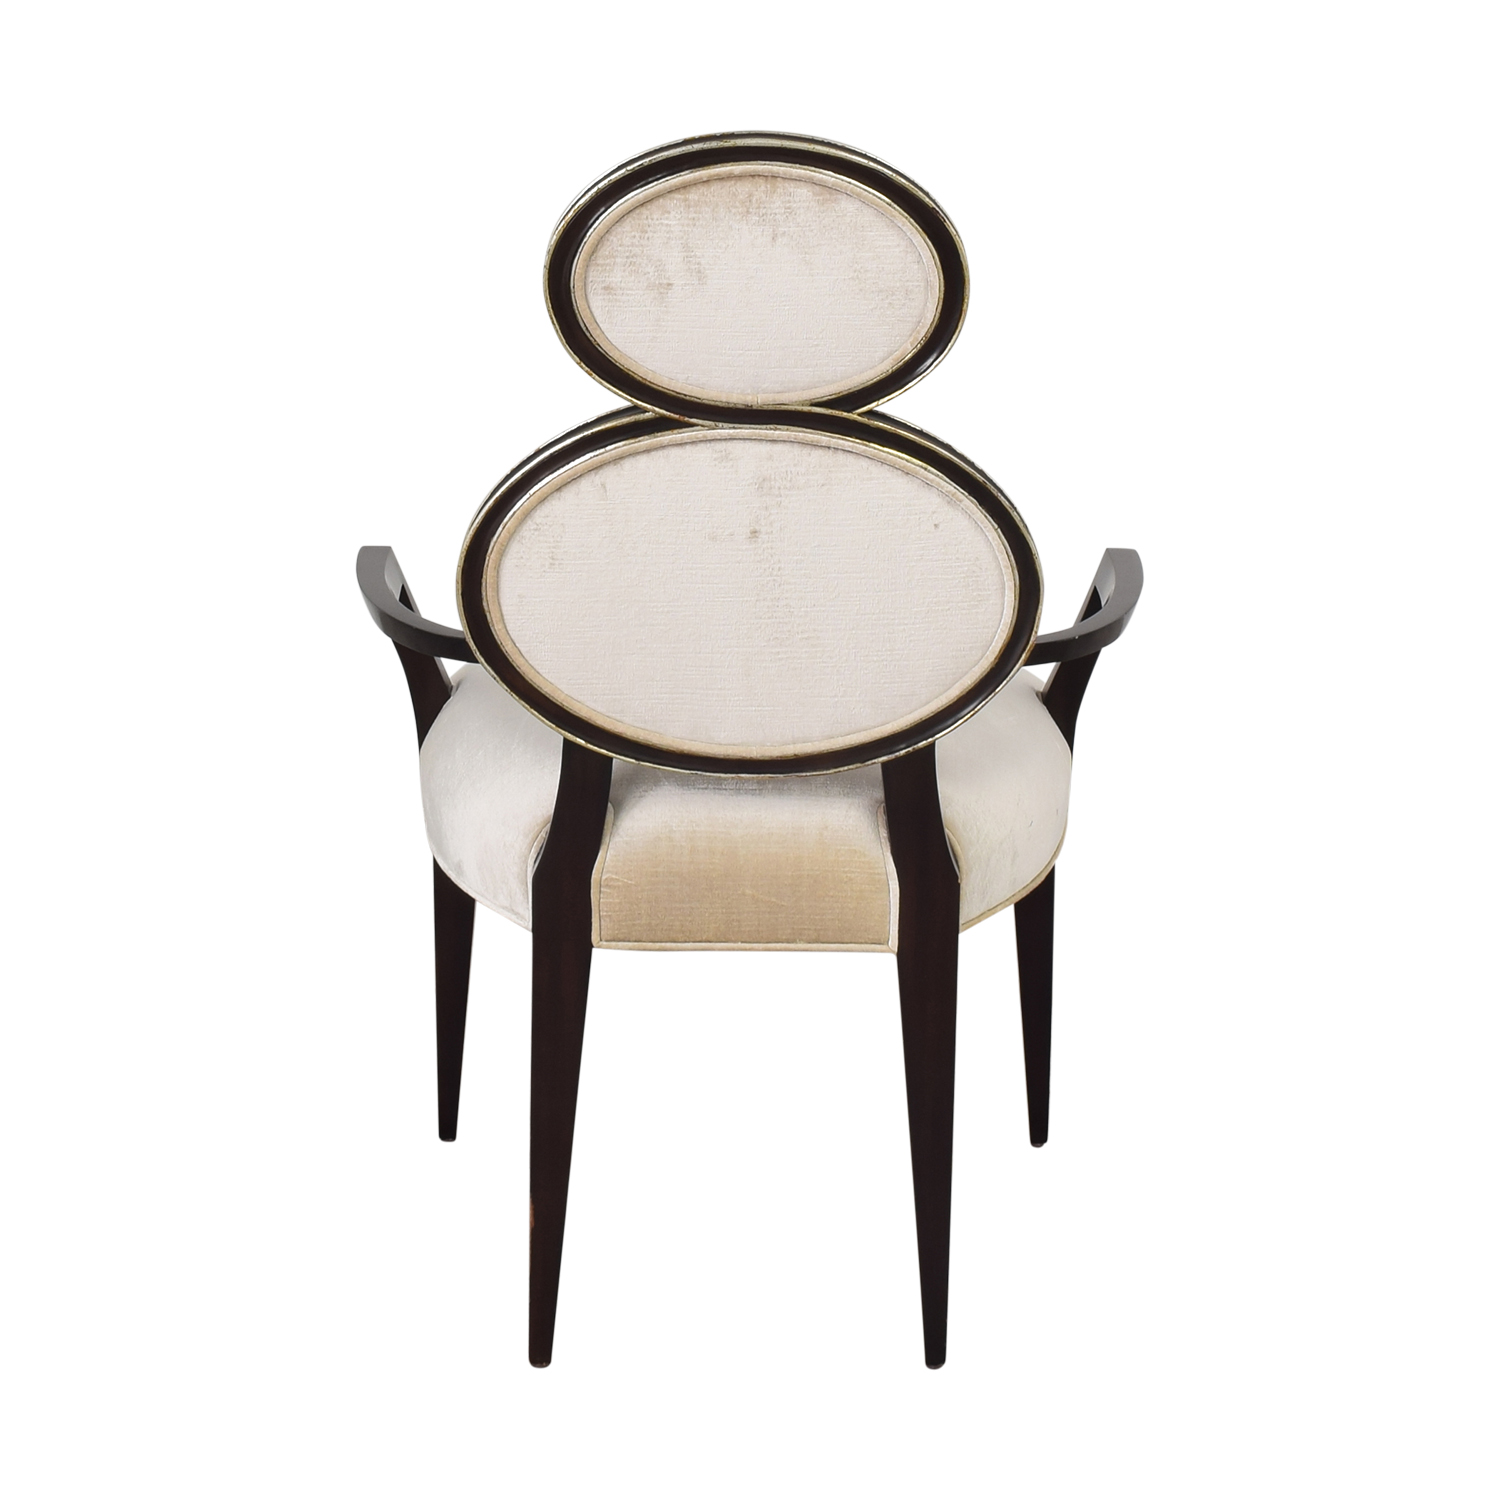 Christopher Guy Figure 8 Chair / Chairs